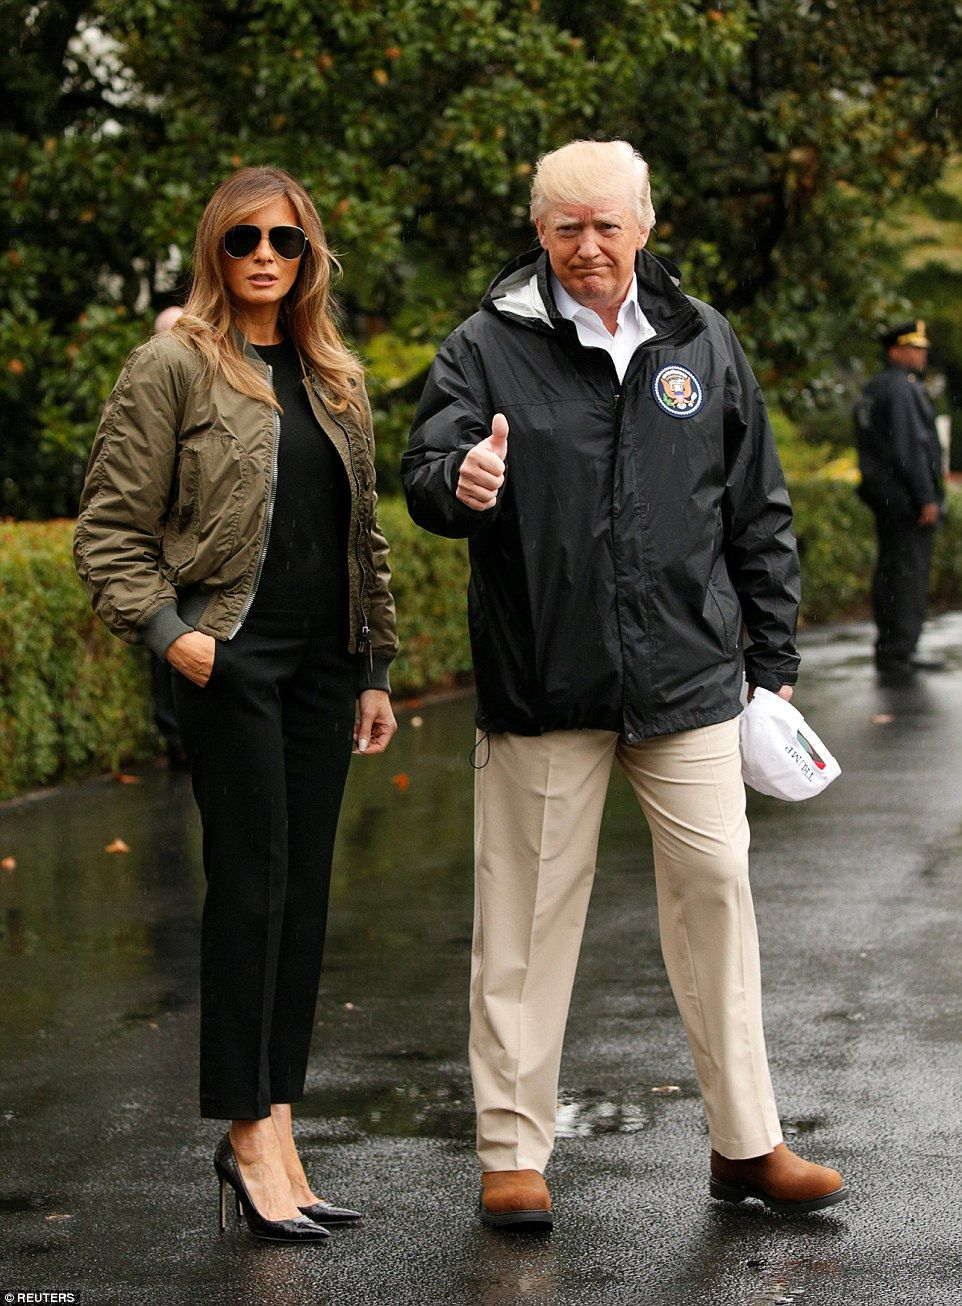 'Texas can handle anything': Trump & Melania lift spirits in Texas